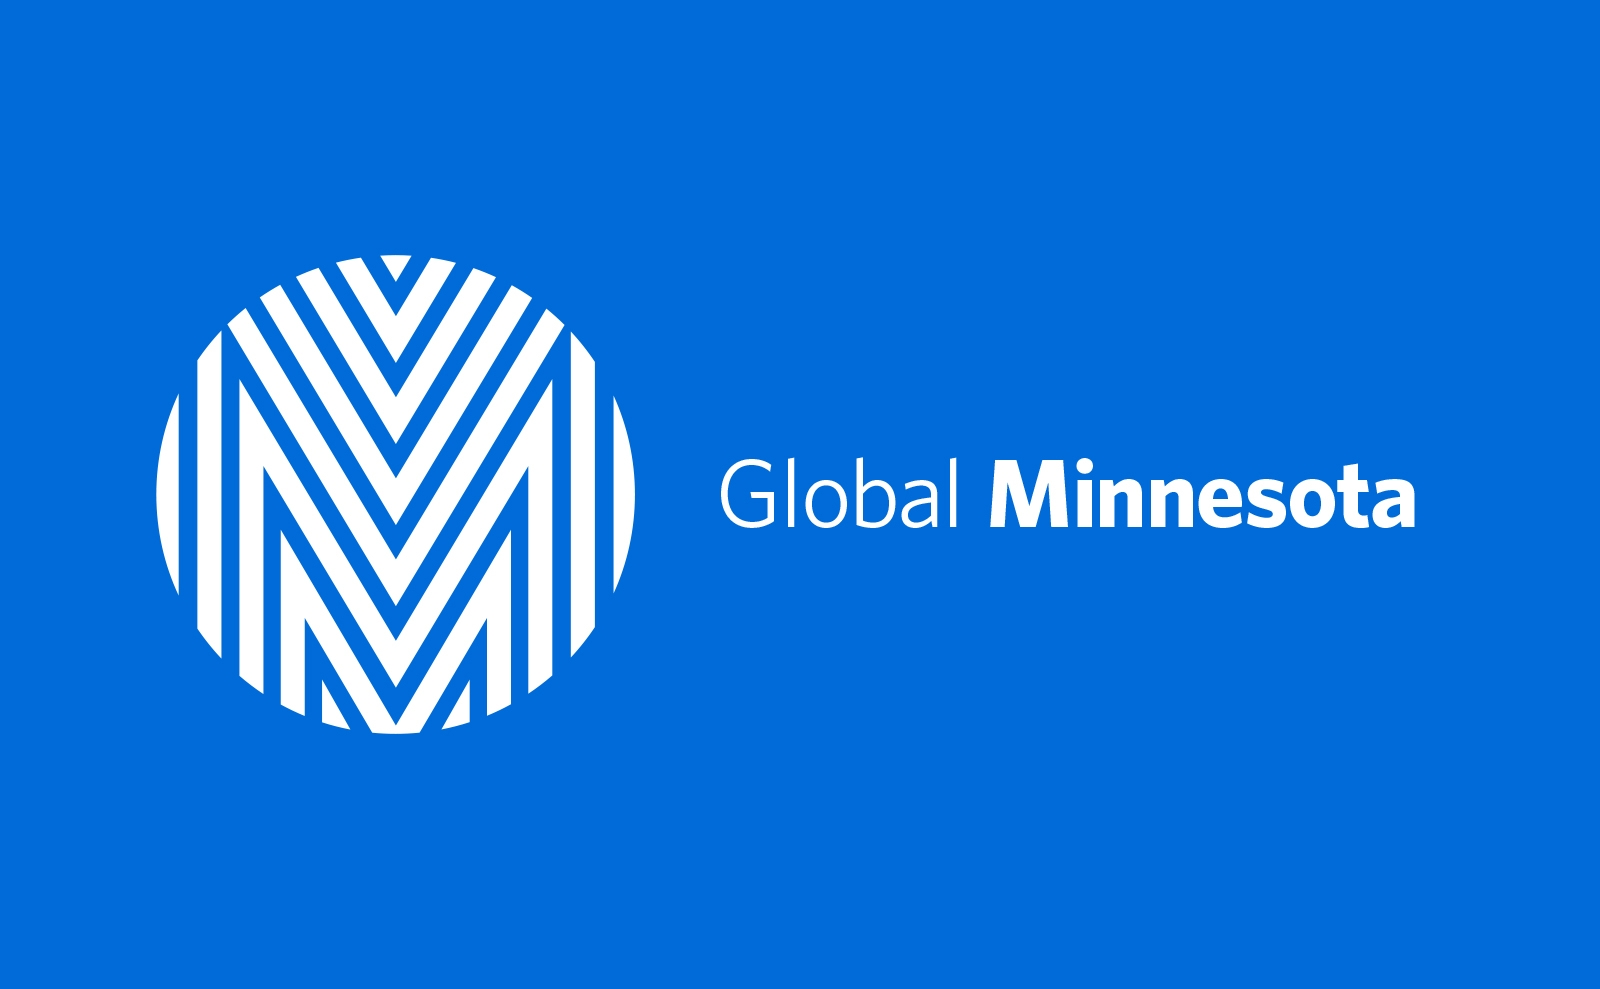 Global Minnesota identity branding design by The TOM Agency